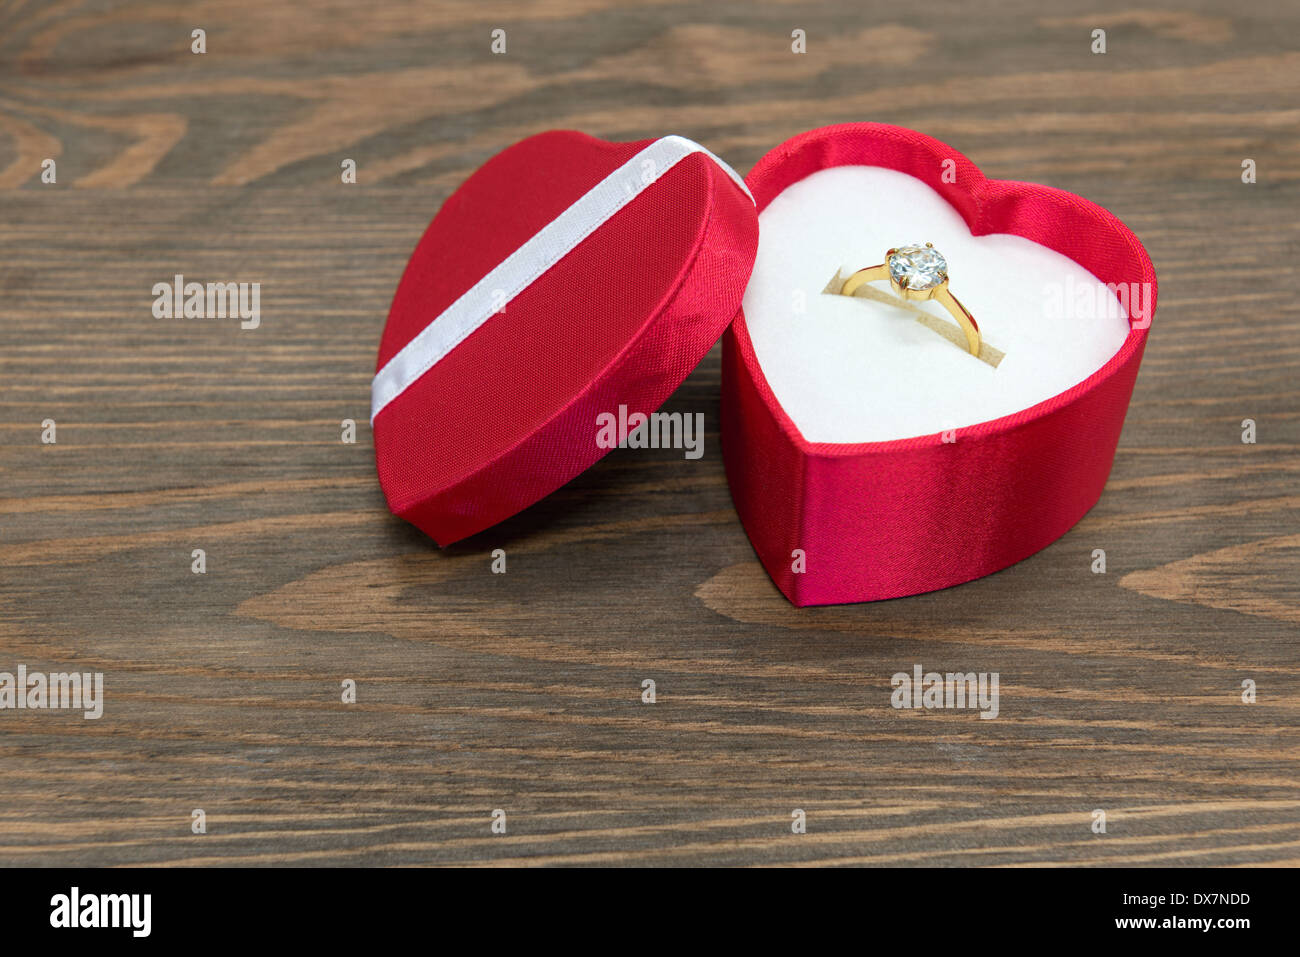 Diamond engagement ring in a red silk heart shaped box. - Stock Image